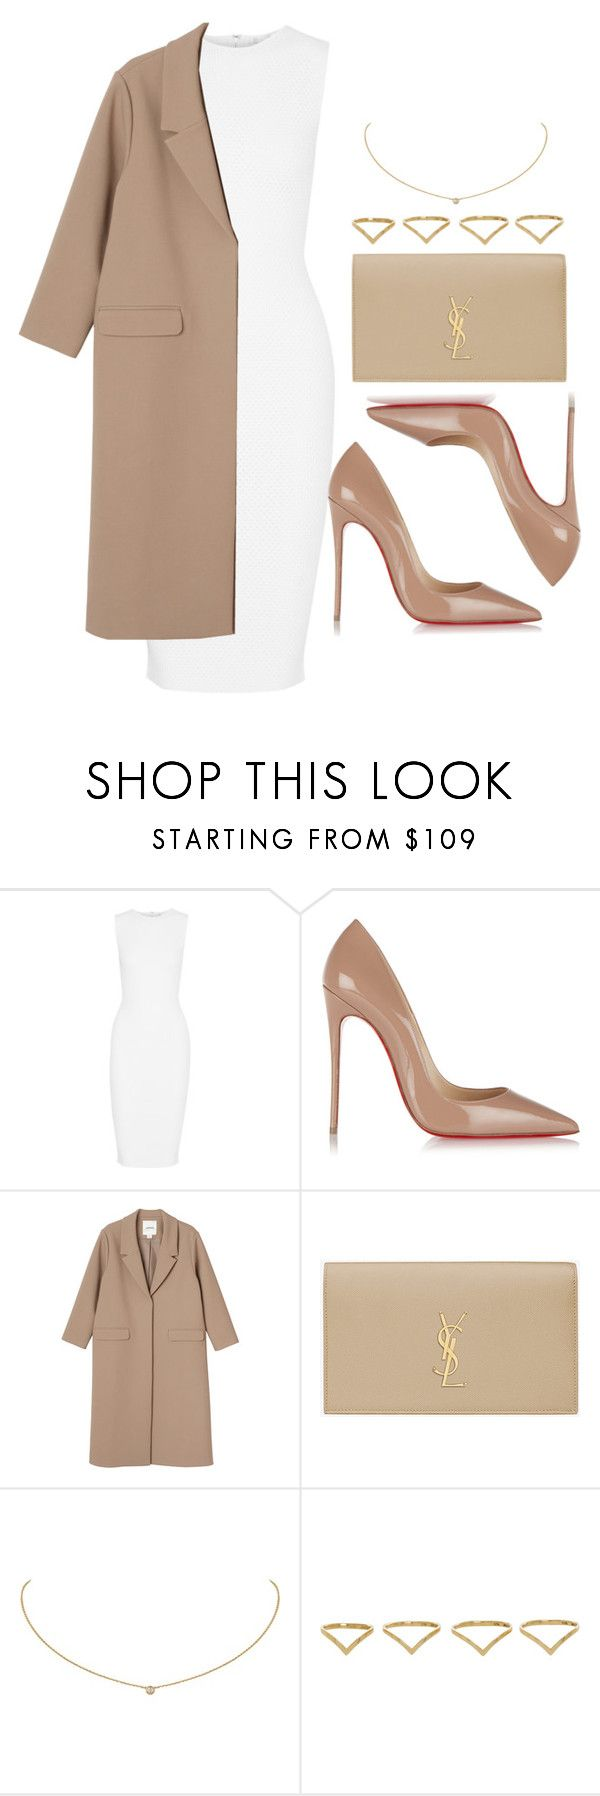 """Style #11586"" by vany-alvarado ❤ liked on Polyvore featuring Victoria Beckham, Christian Louboutin, Monki, Yves Saint Laurent, Cartier and Ana Khouri"